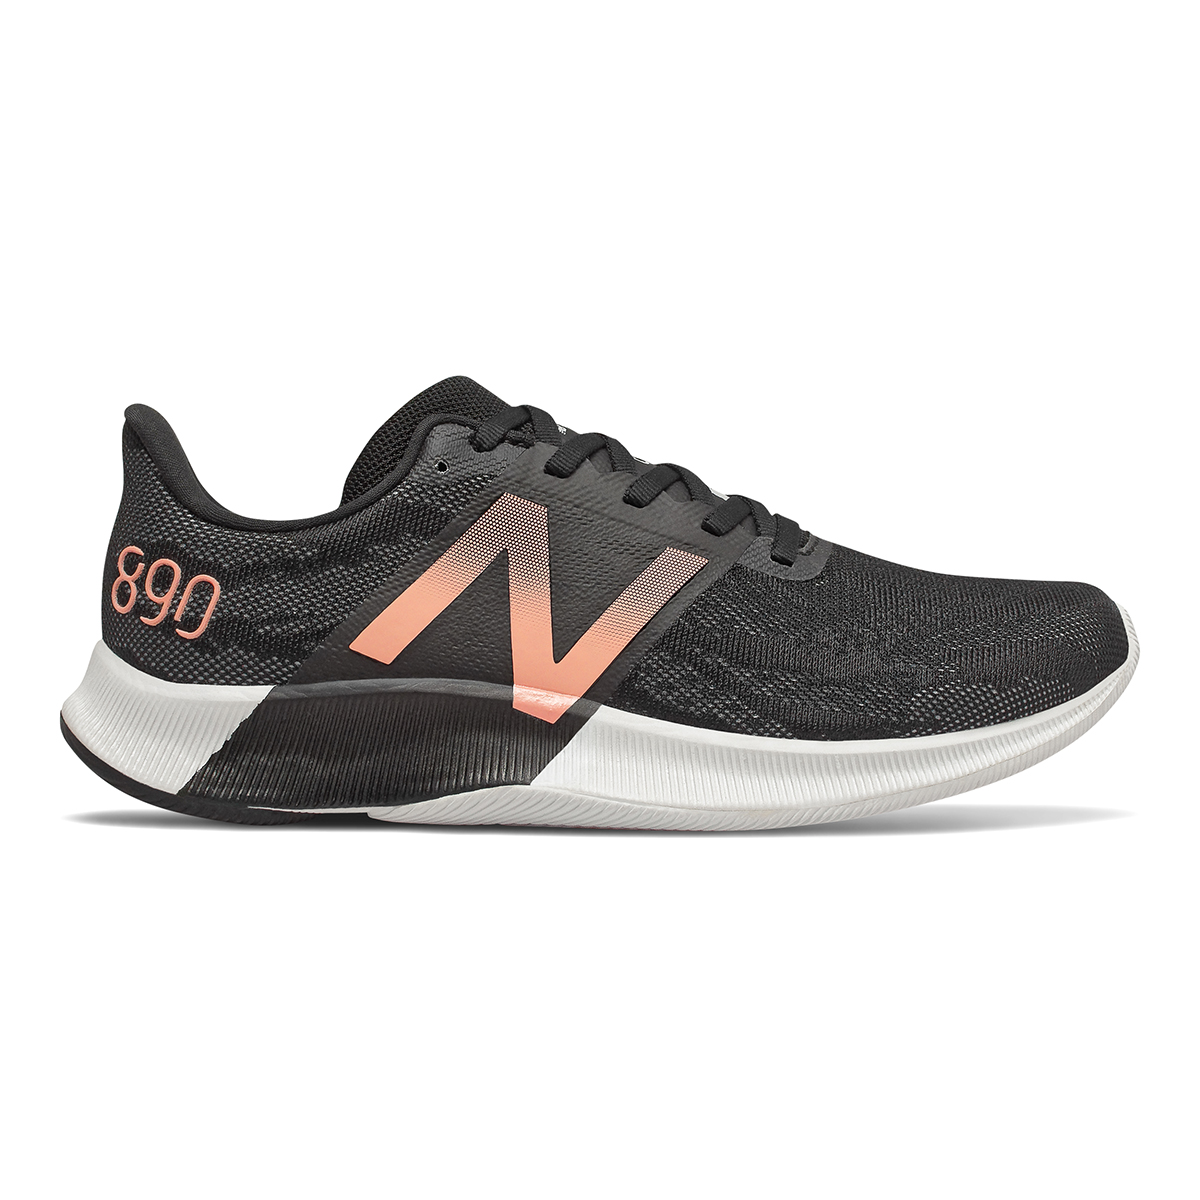 Women's New Balance Fuelcell 890V8 Running Shoe, , large, image 1